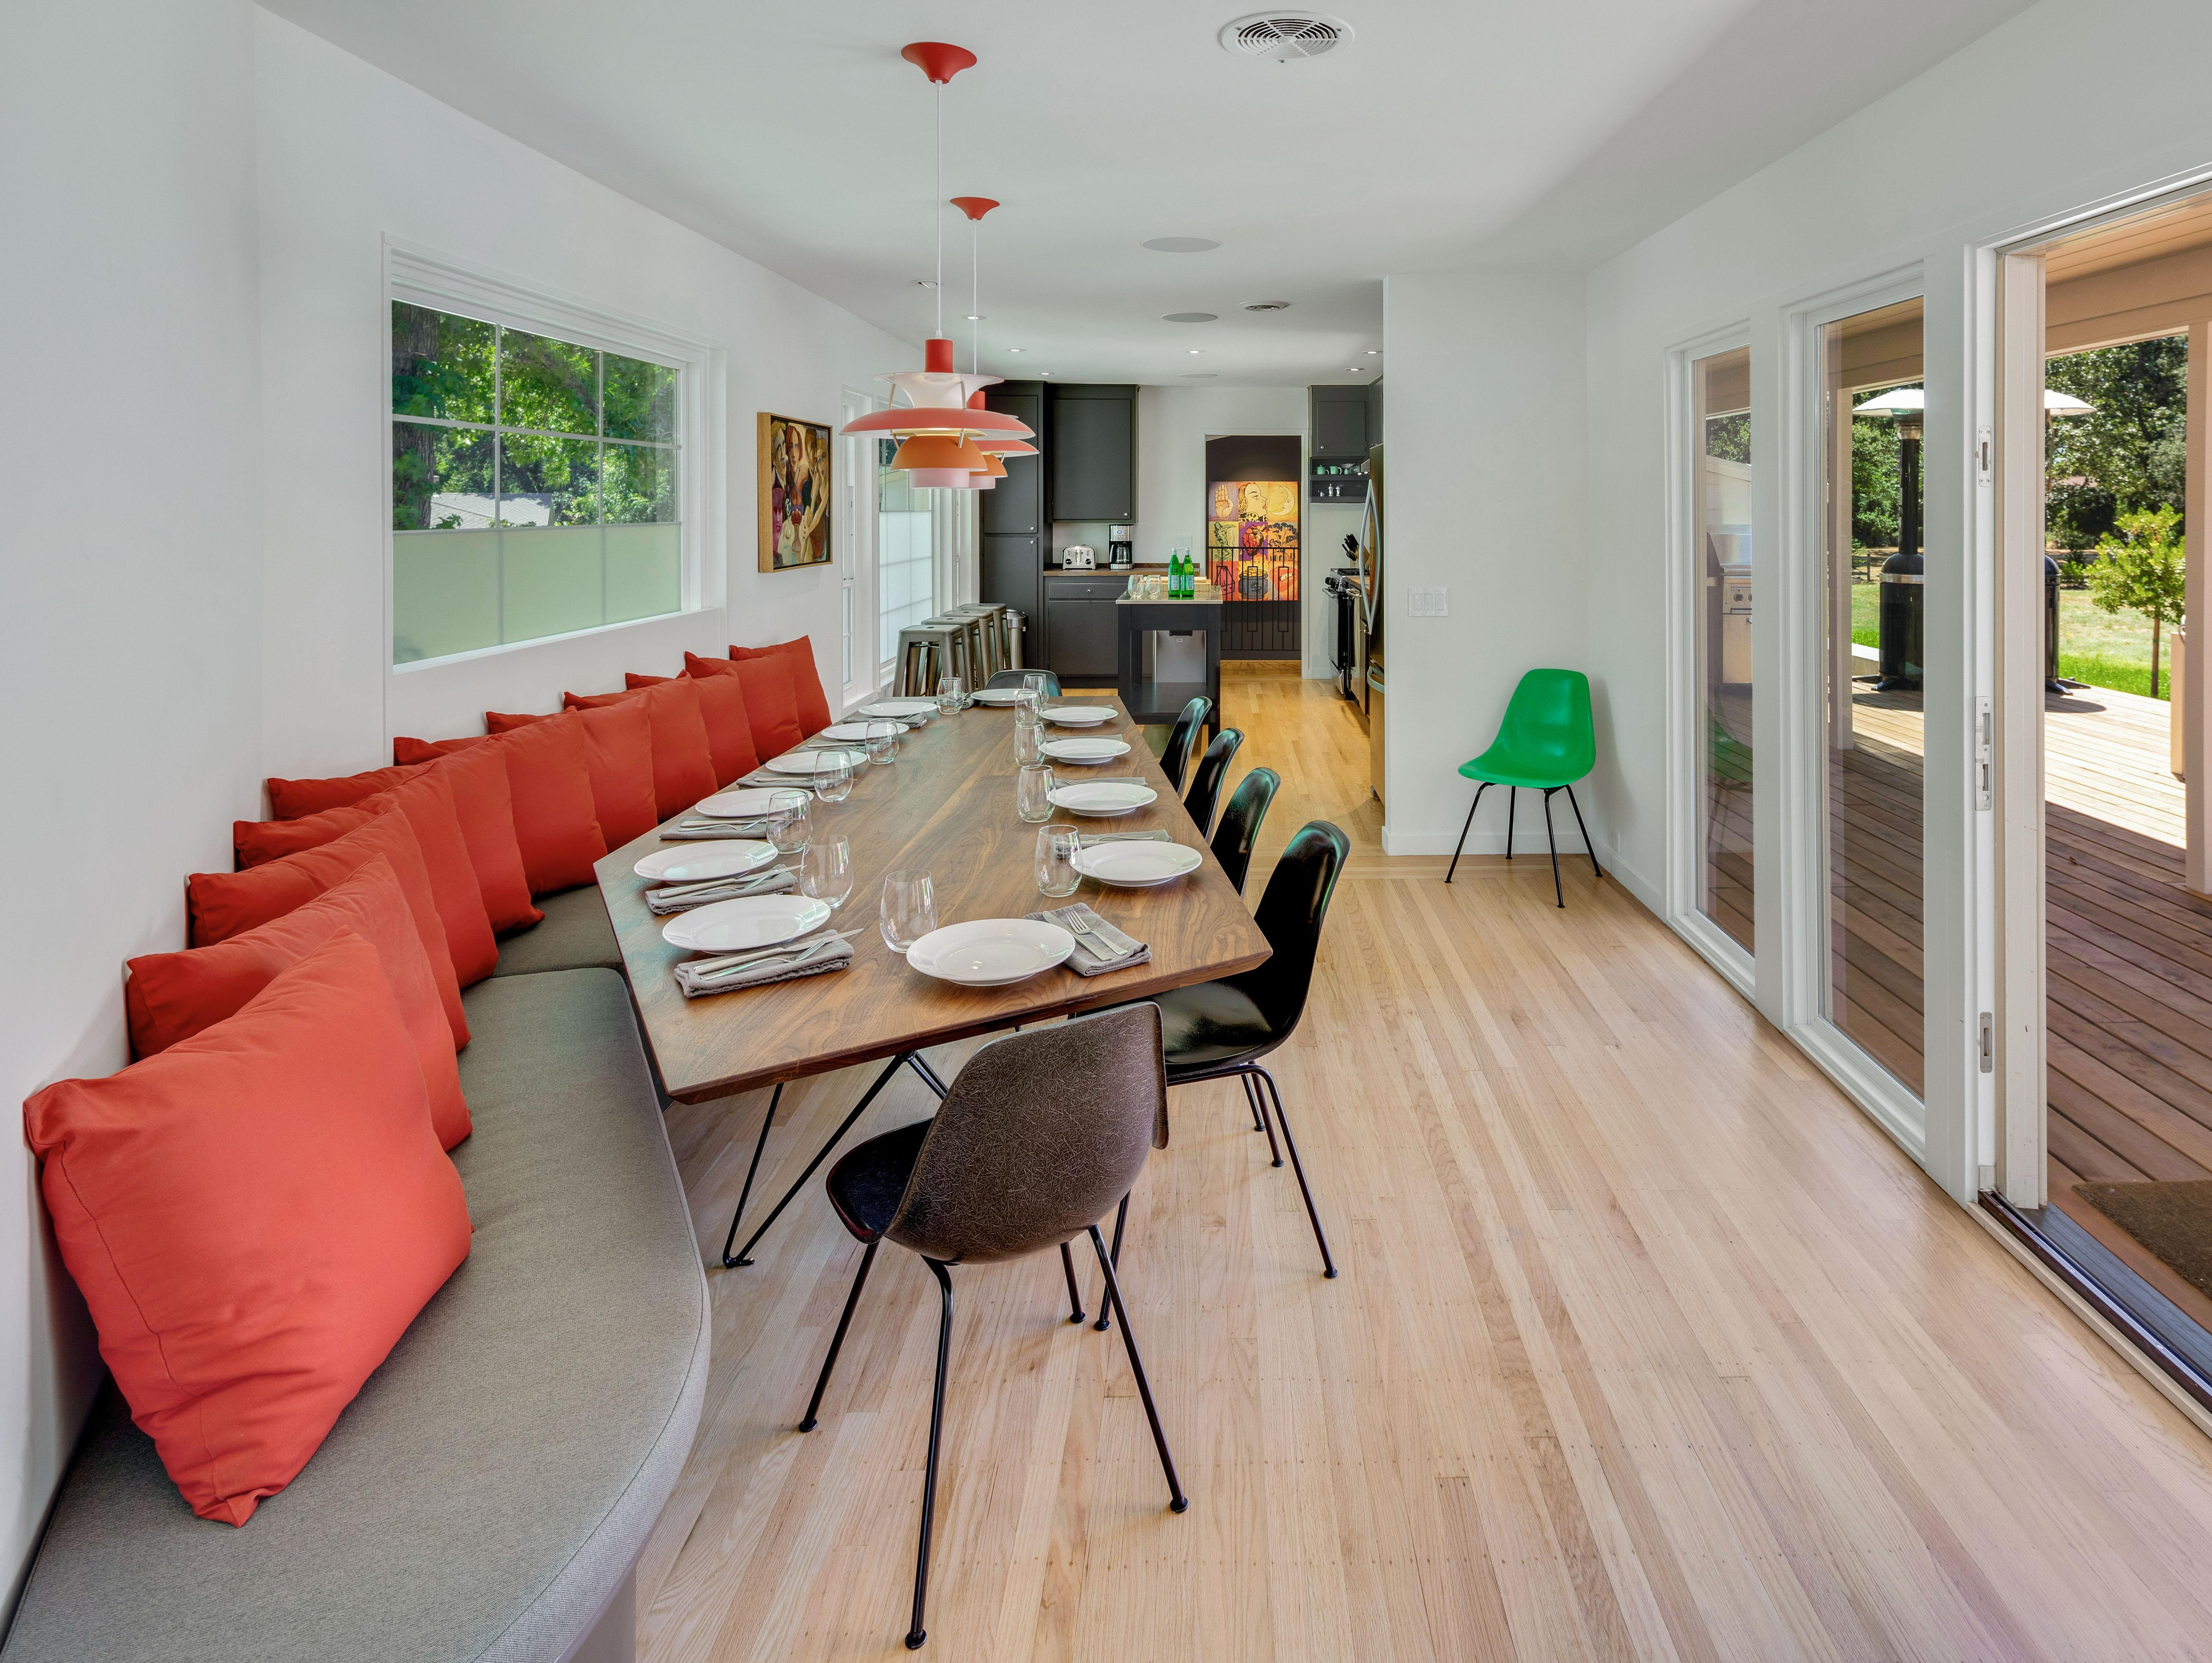 When you're ready to eat, savor family-style meals at the custom-built 10-person dining table.